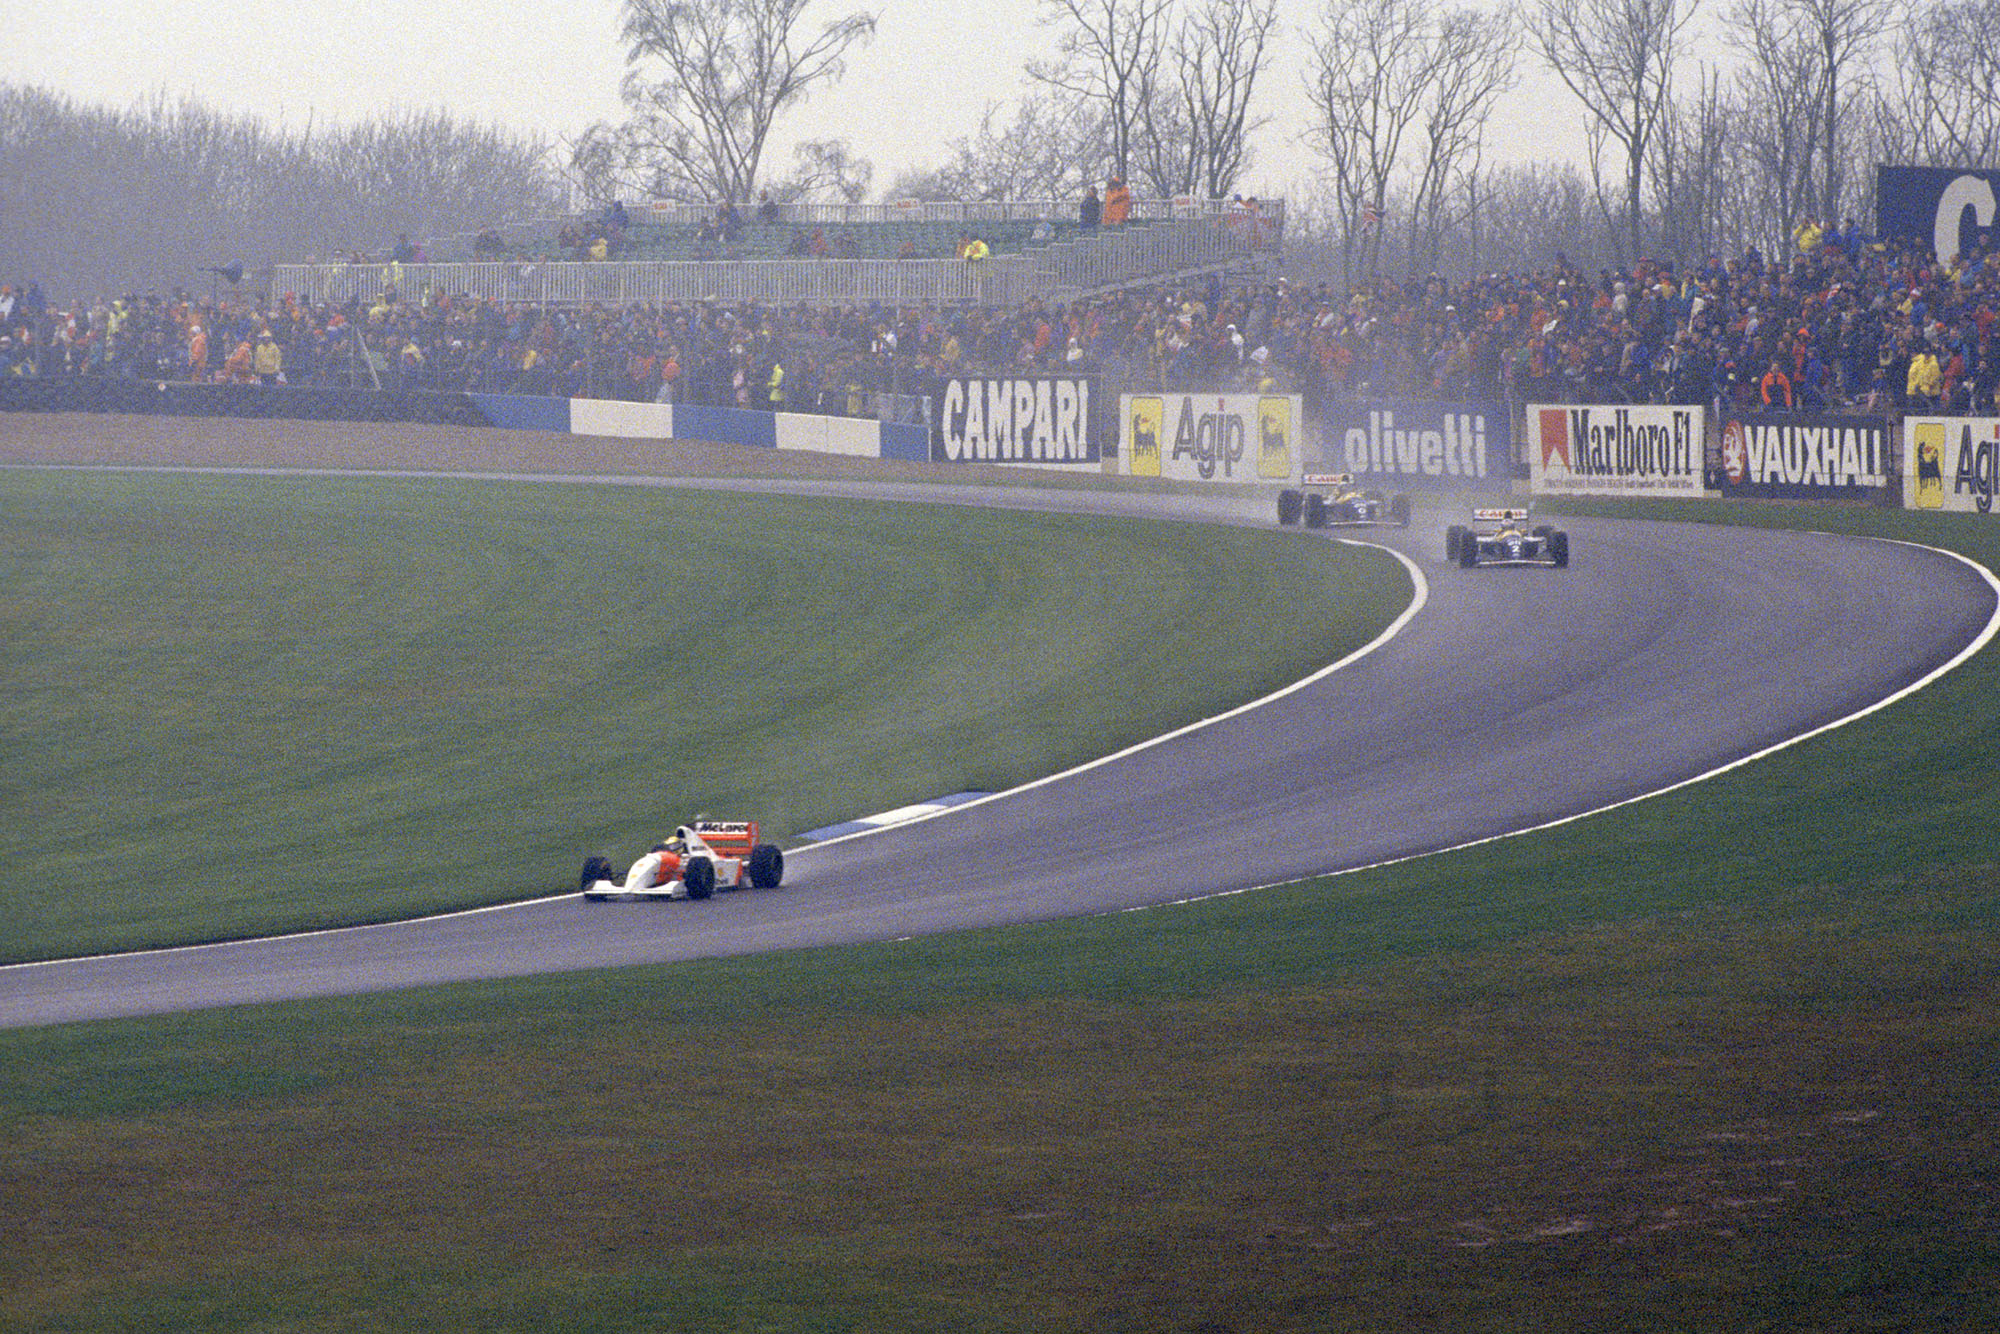 Ayrton Senna leads by some distance in the 1993 European Grand Prix at Donington